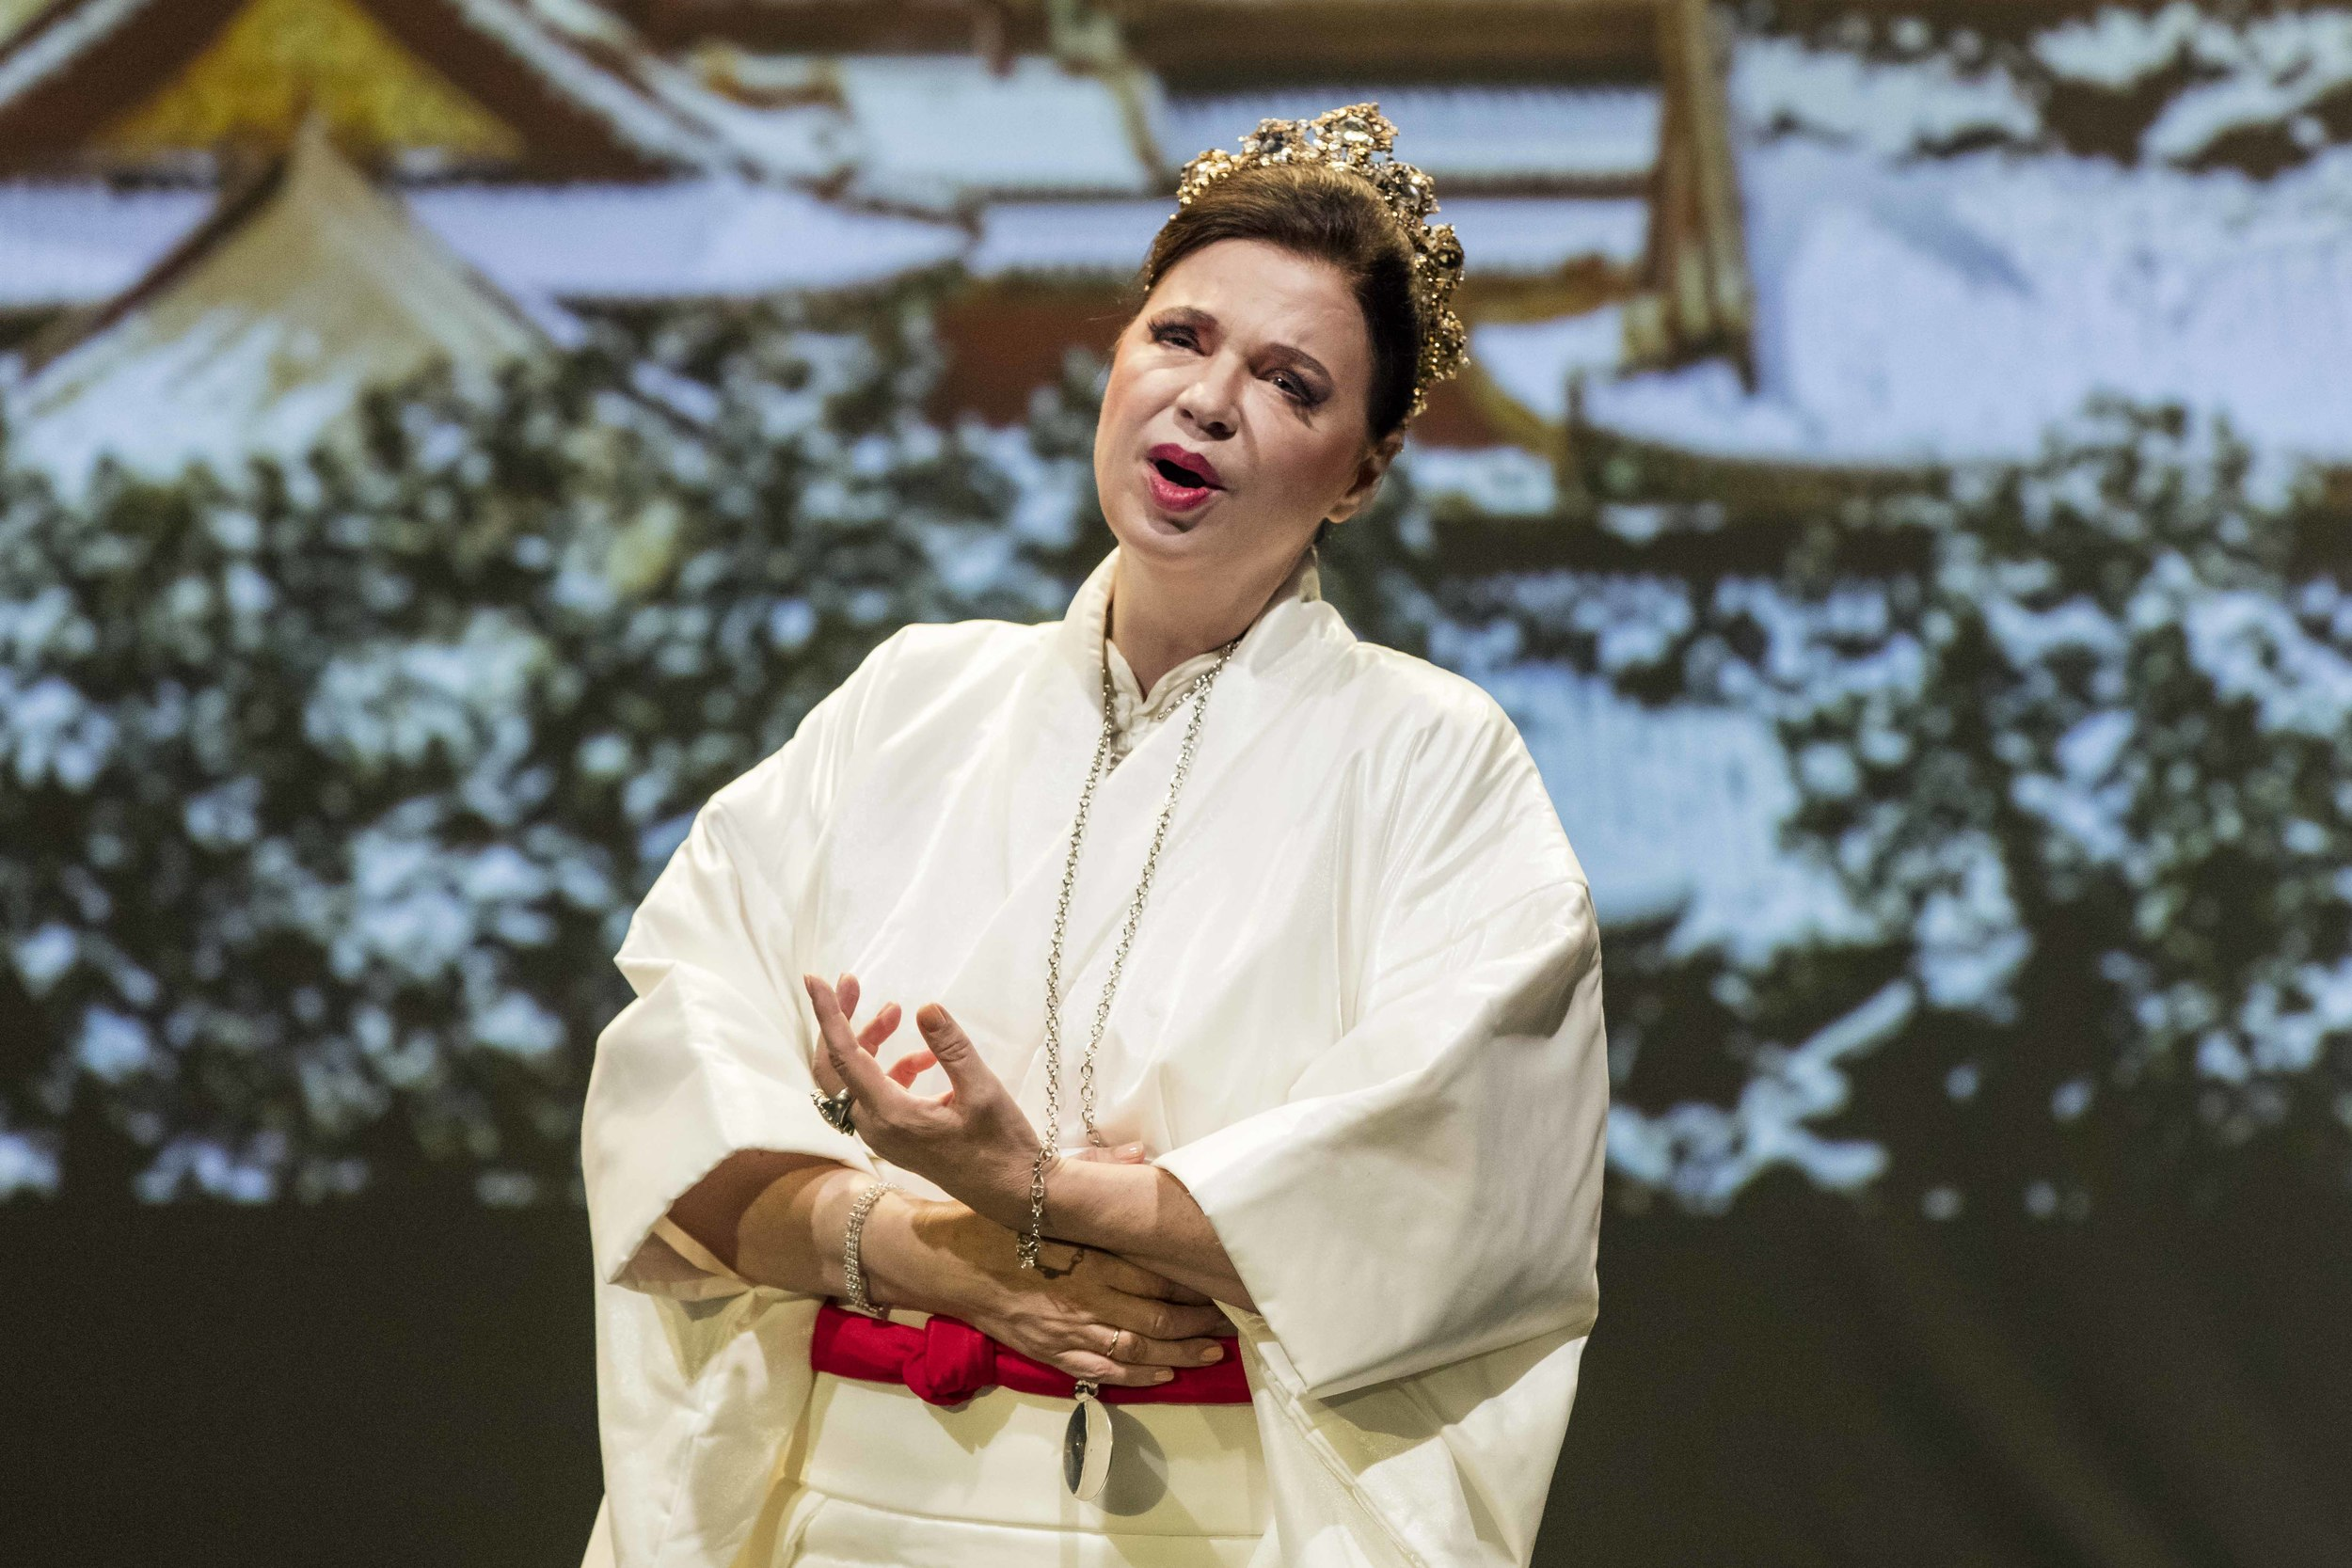 Vera Wenkert as Turandot in Zurich opera (Photo: Lucian Hunziker)